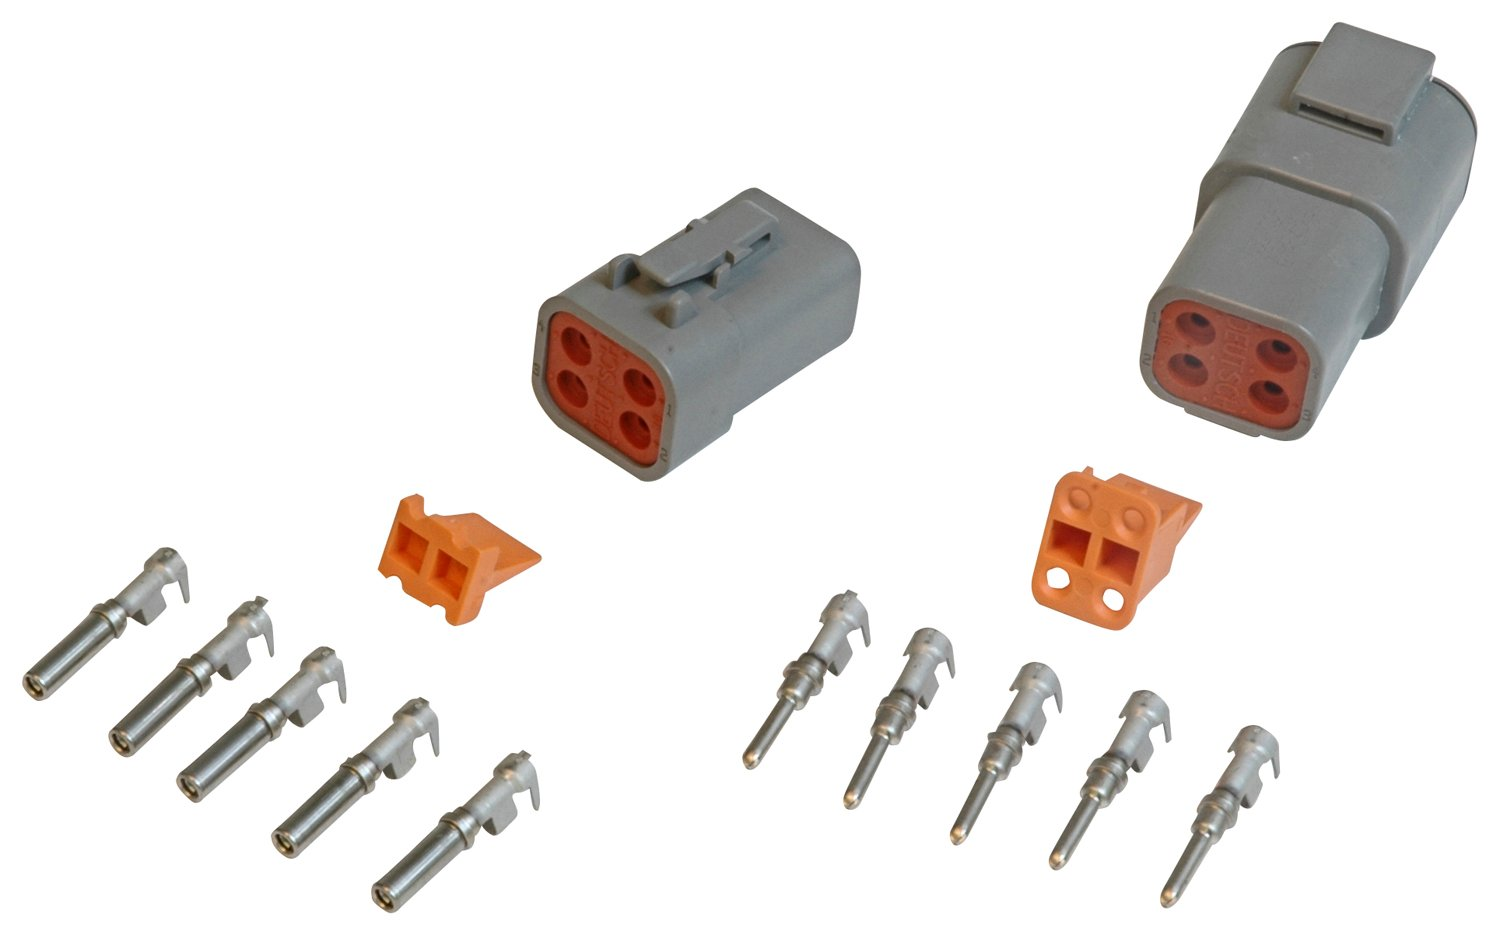 connectors msd performance products tech support 888 258 3835 4 pin deutsch connector 12 14 gauge